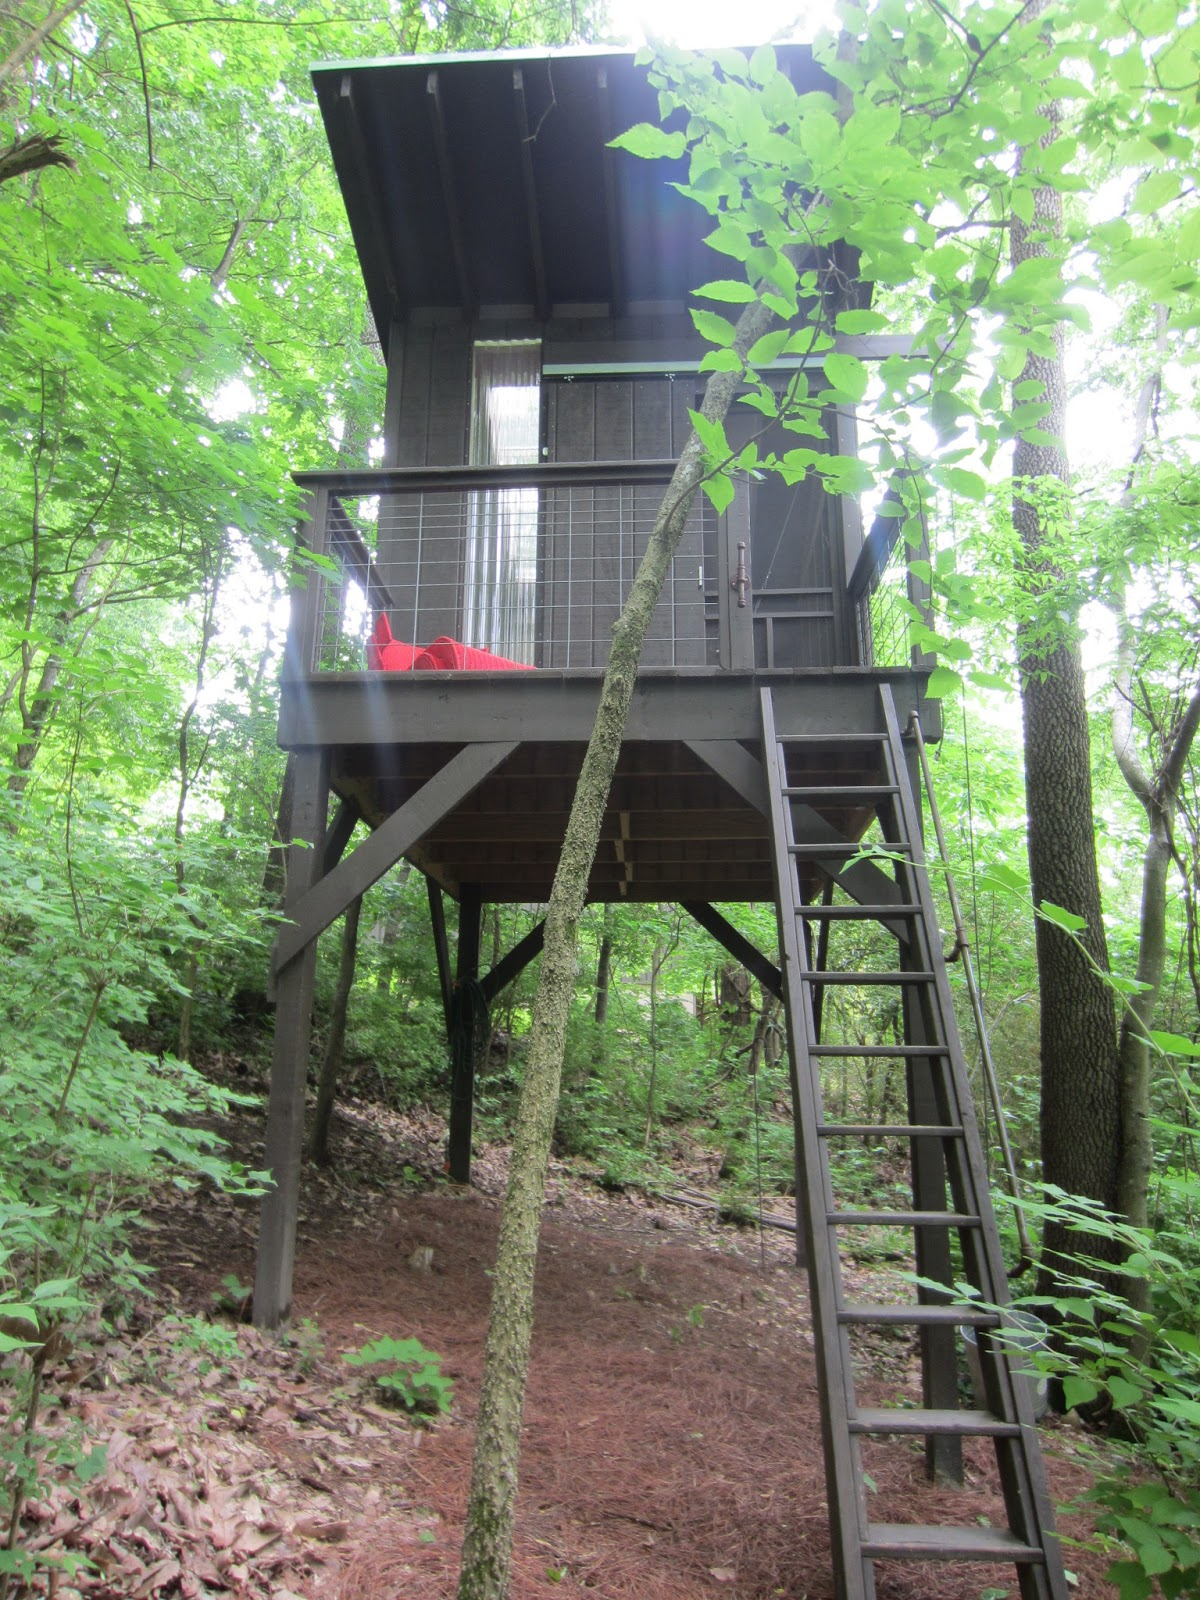 a modern tree house tiny stilt house in